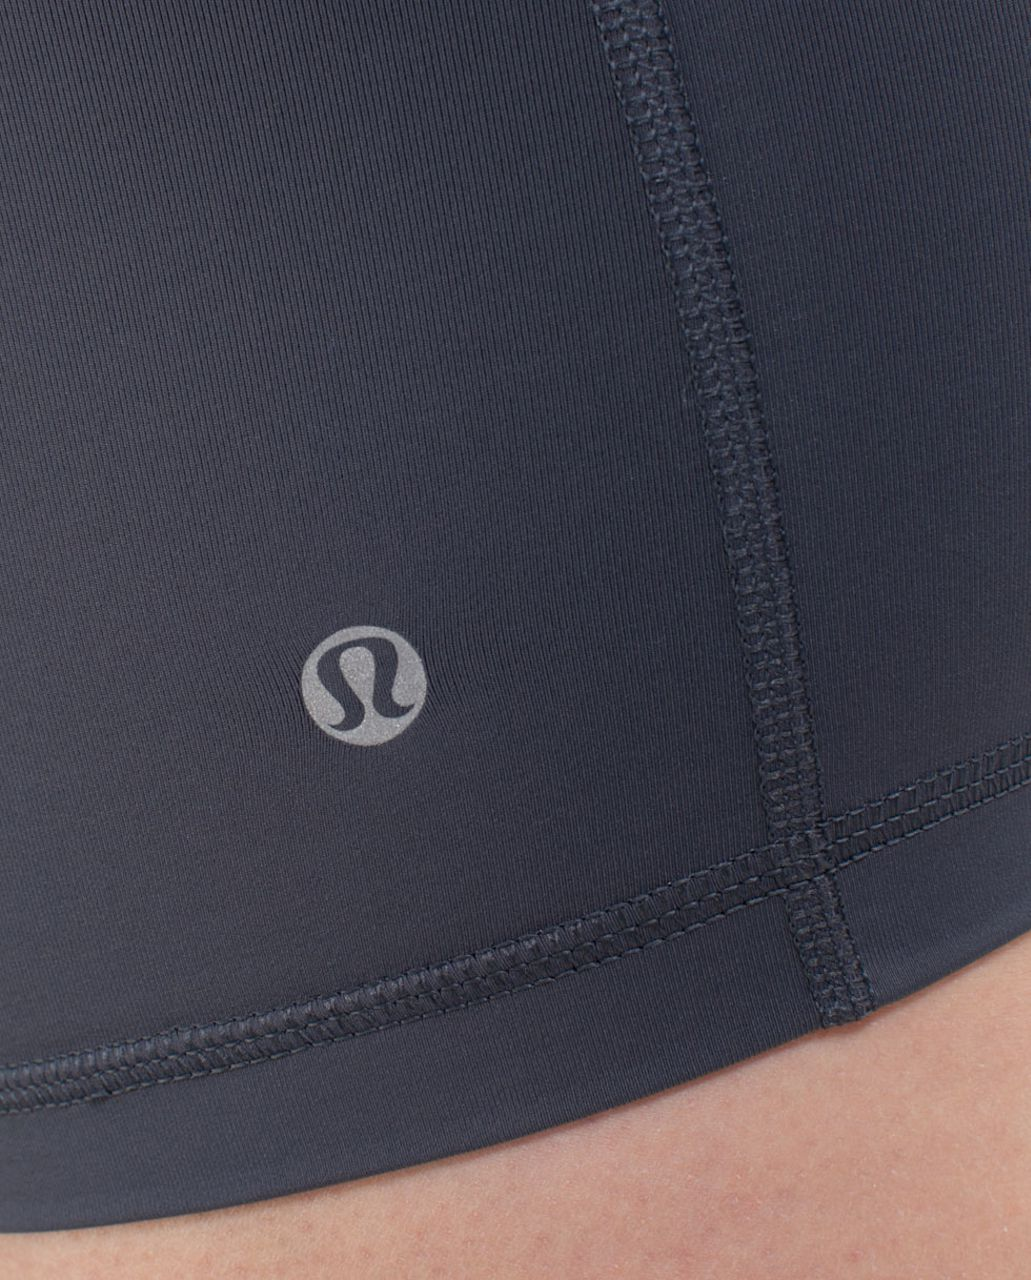 Lululemon Hot 'N Sweaty Short - Coal /  Persian Purple